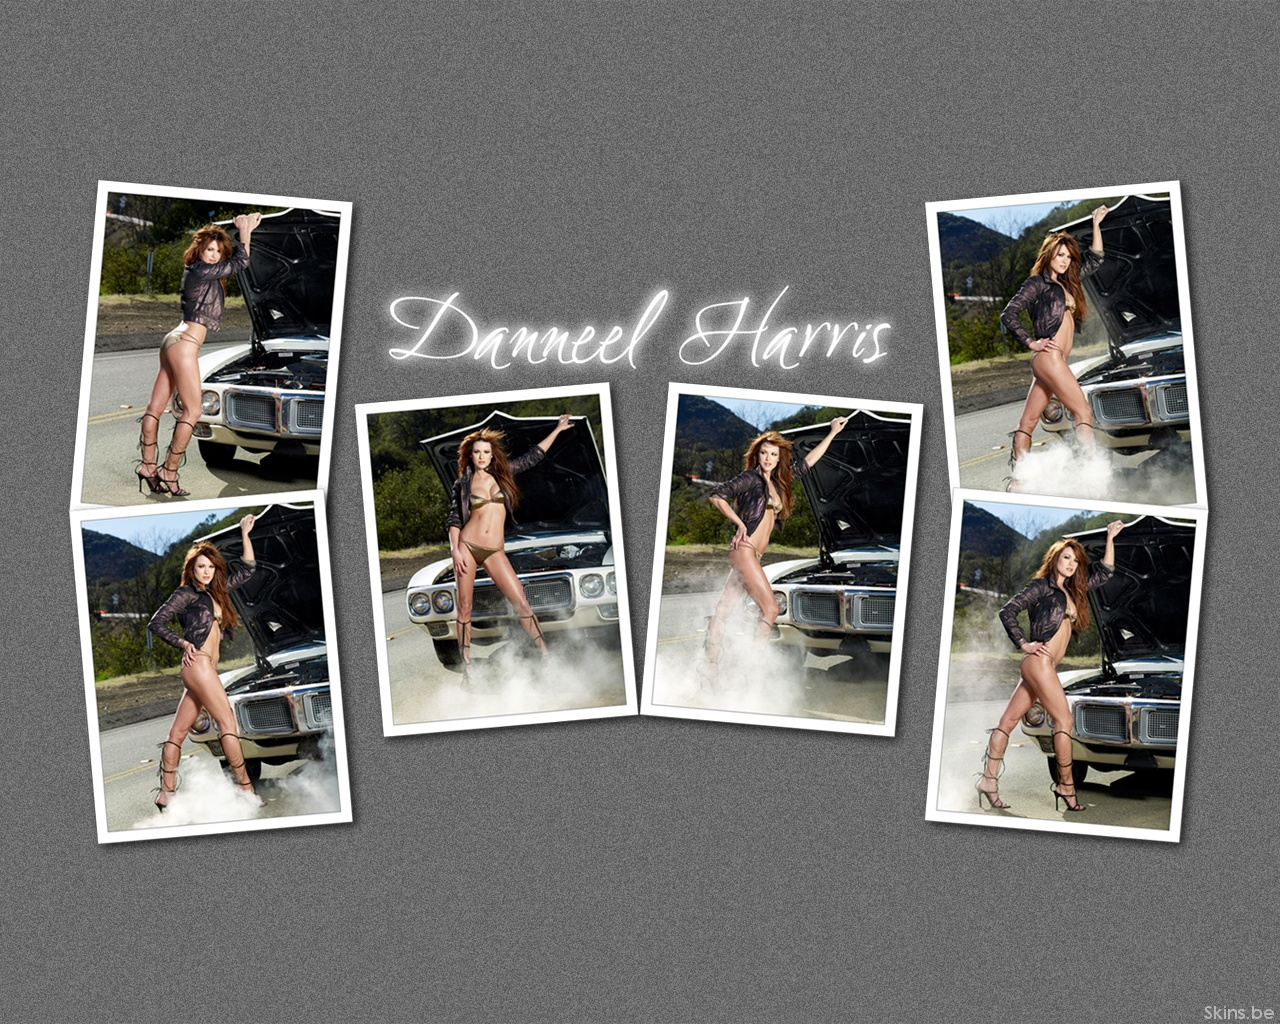 Danneel Harris wallpaper (#32559)